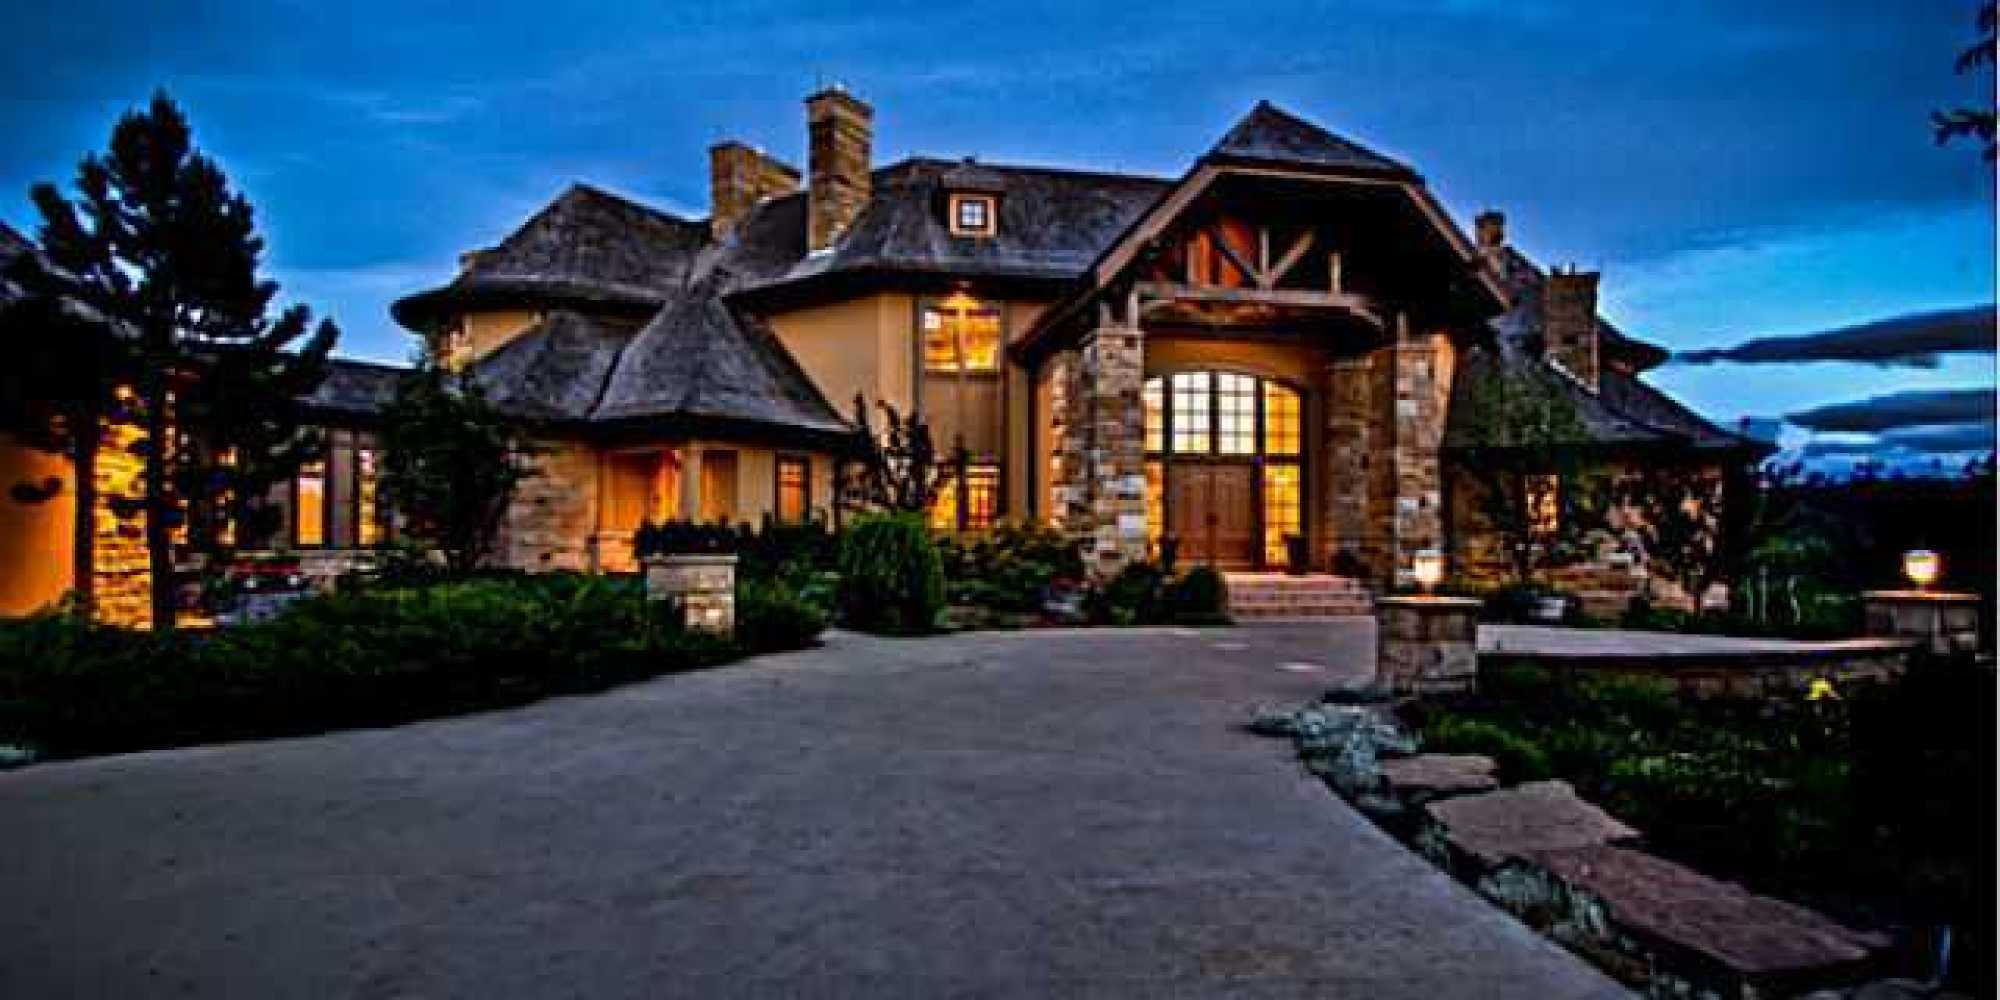 Alberta 39 s most expensive homes for sale the top 3 photos for Big ranch house plans